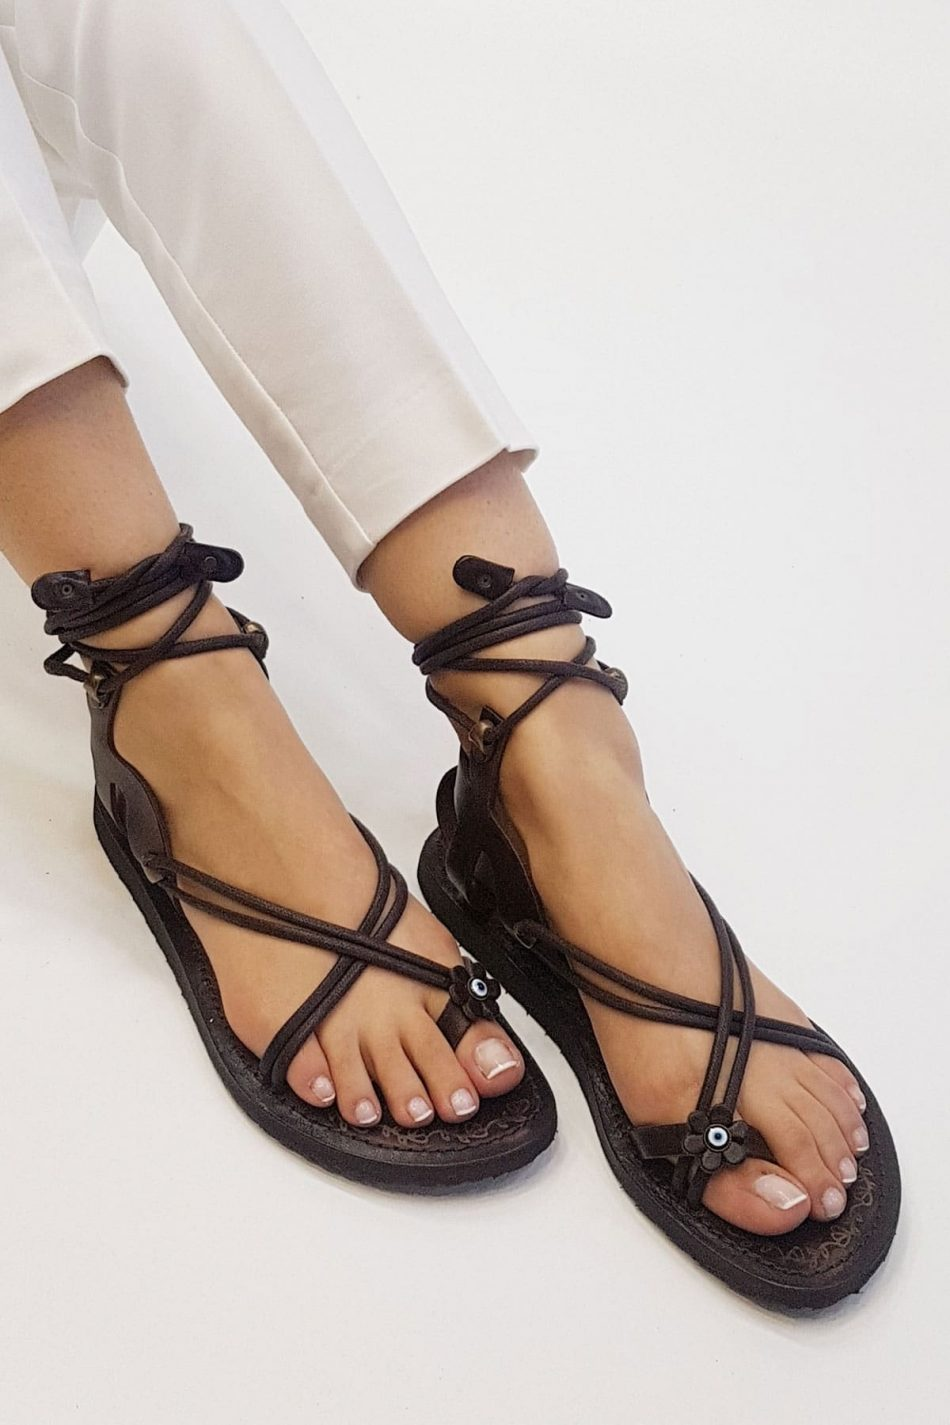 buy strappy sandals